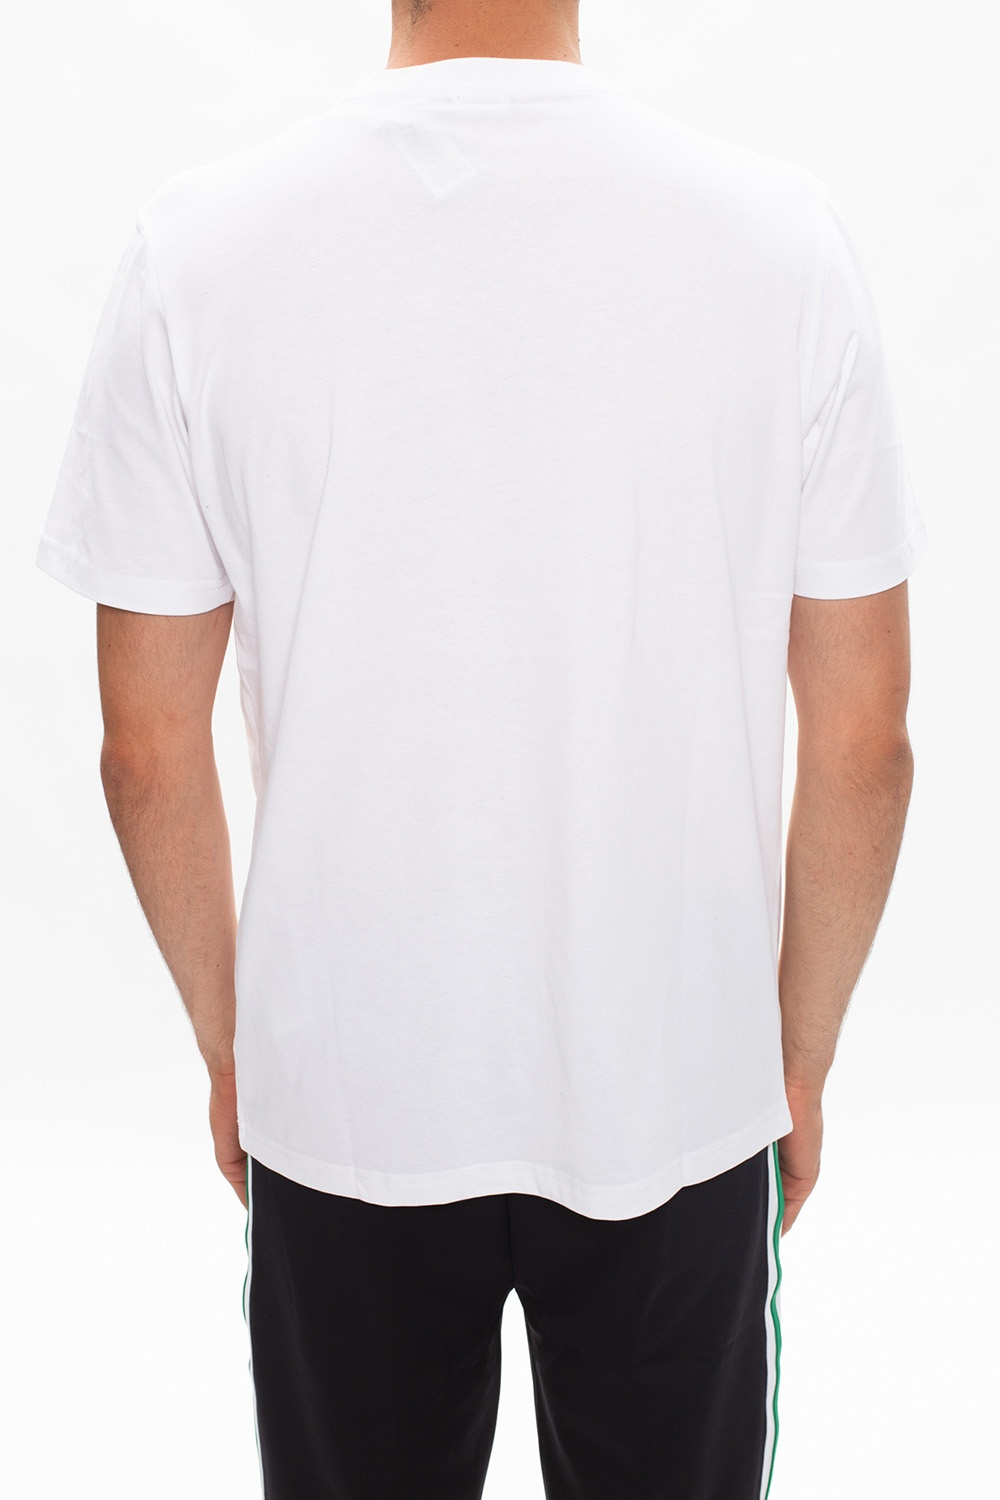 Diesel T-shirt with lettering